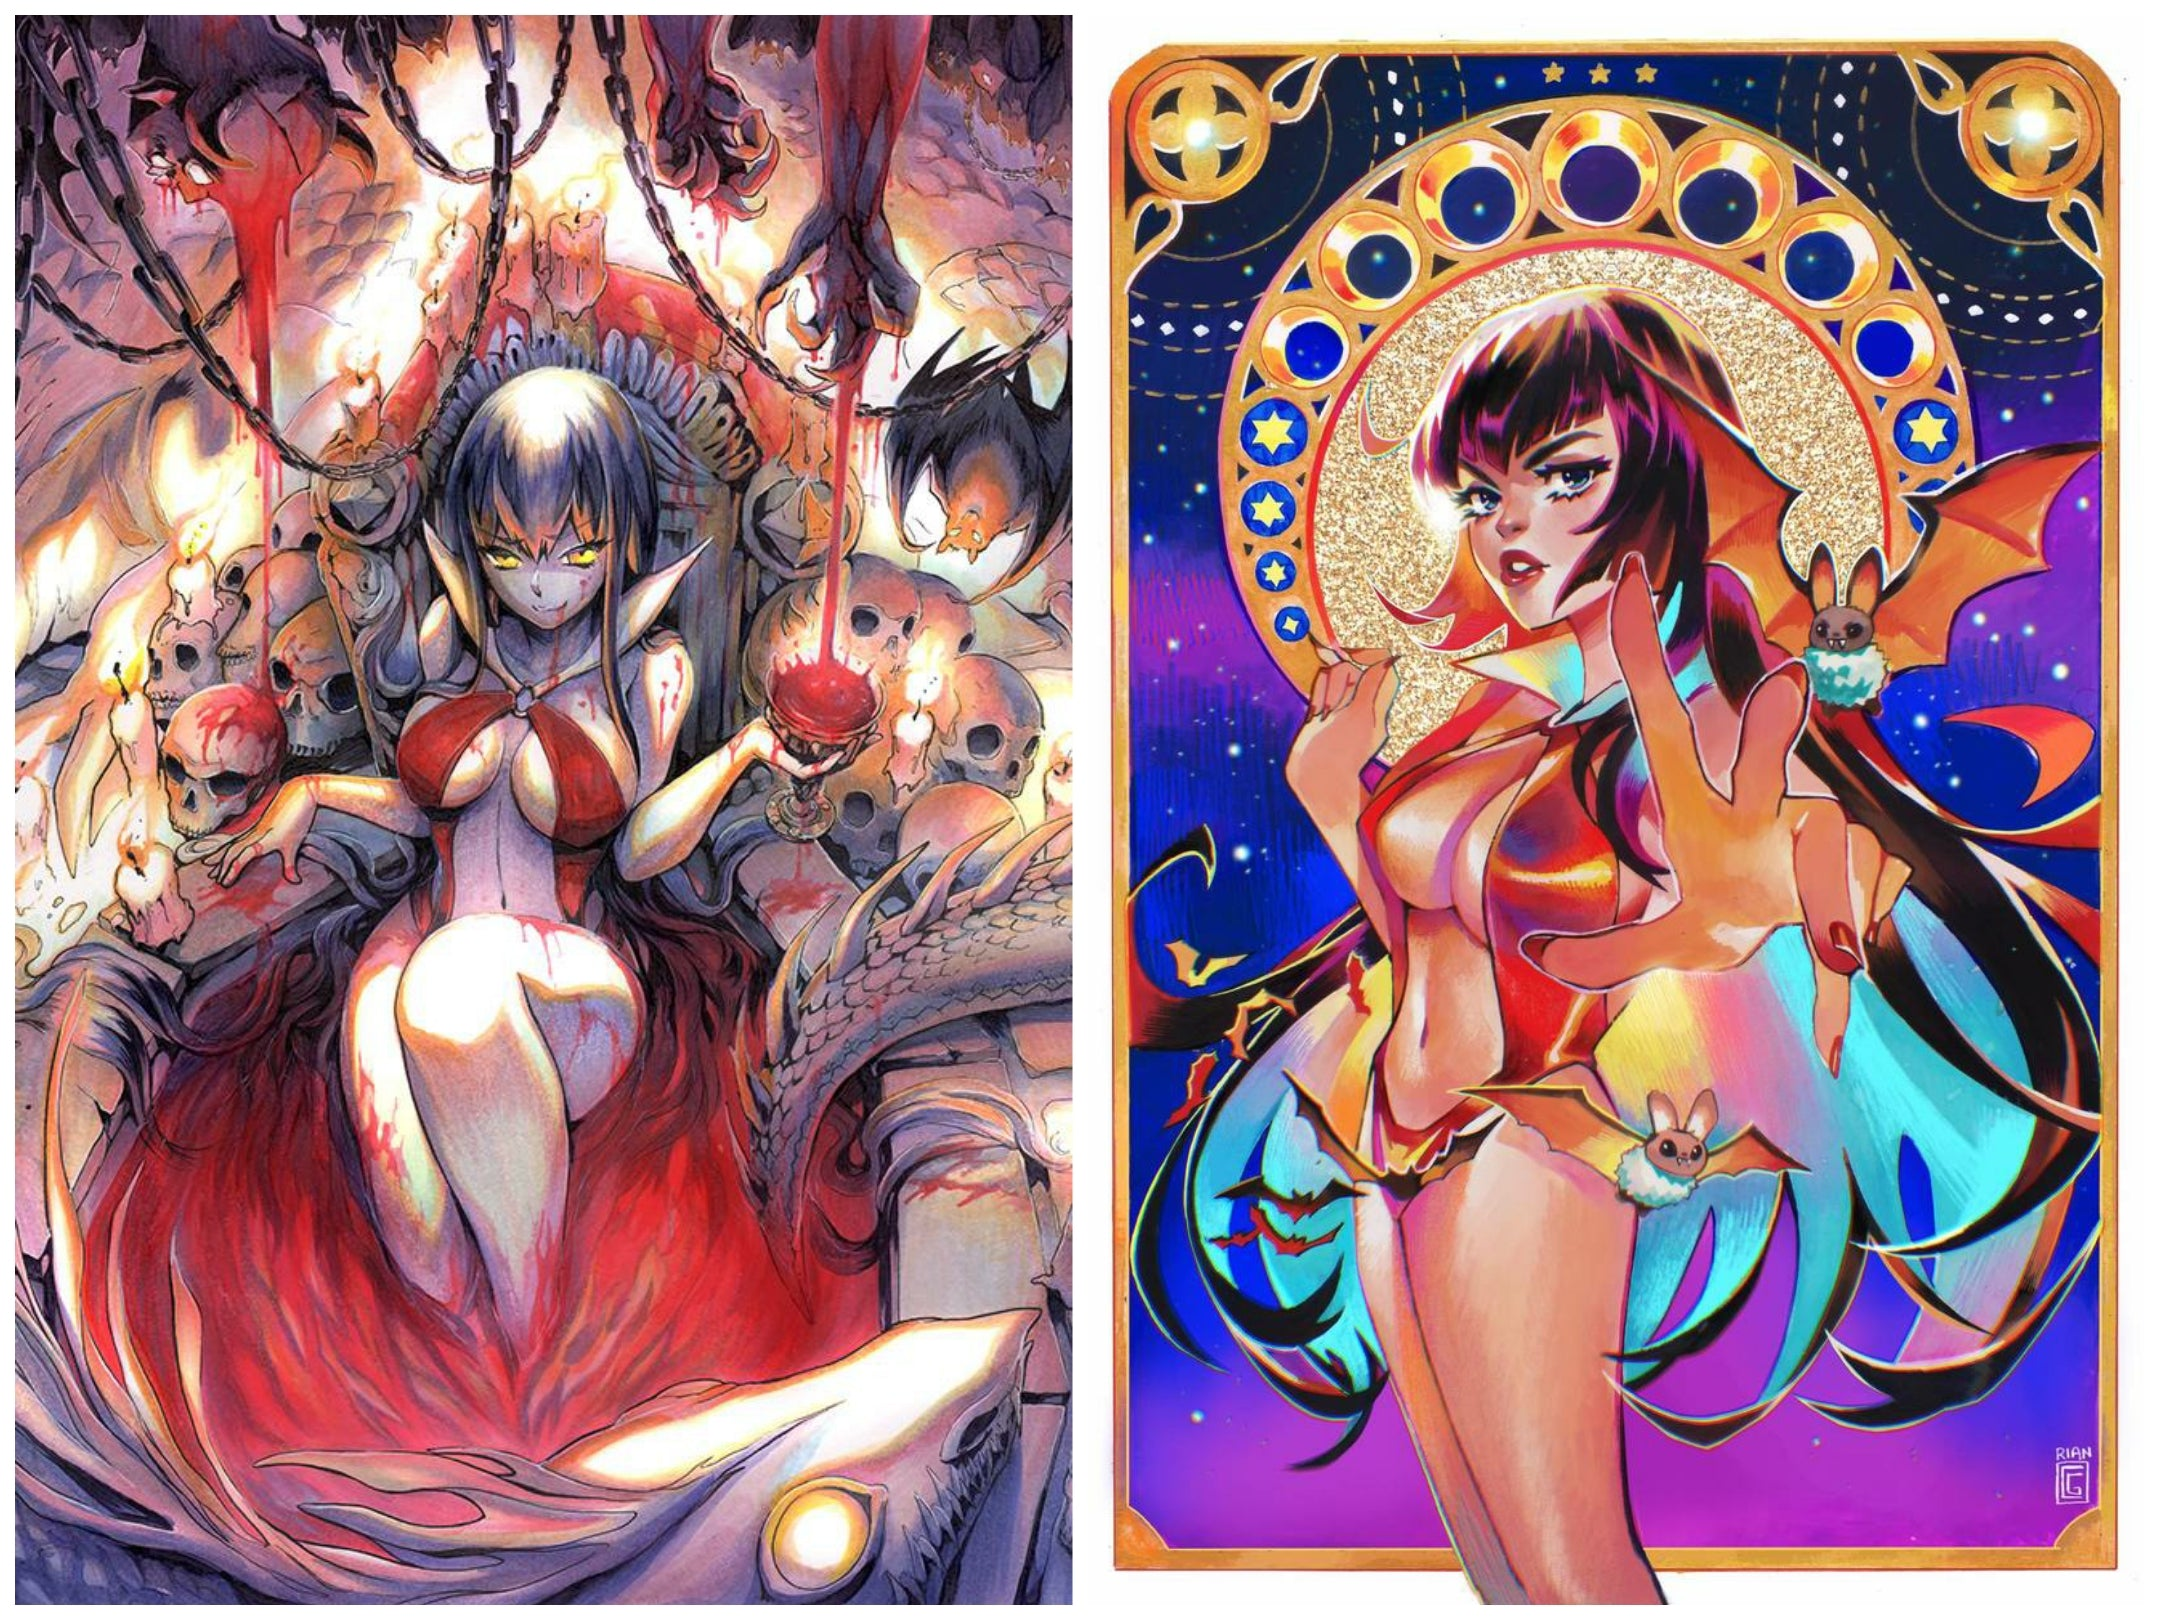 12/09/2020 VAMPIRELLA #16 & VAMPIRELLA DARK POWERS #1 SSCO VARIANT SET (NEW RELEASE 12/16/2020)